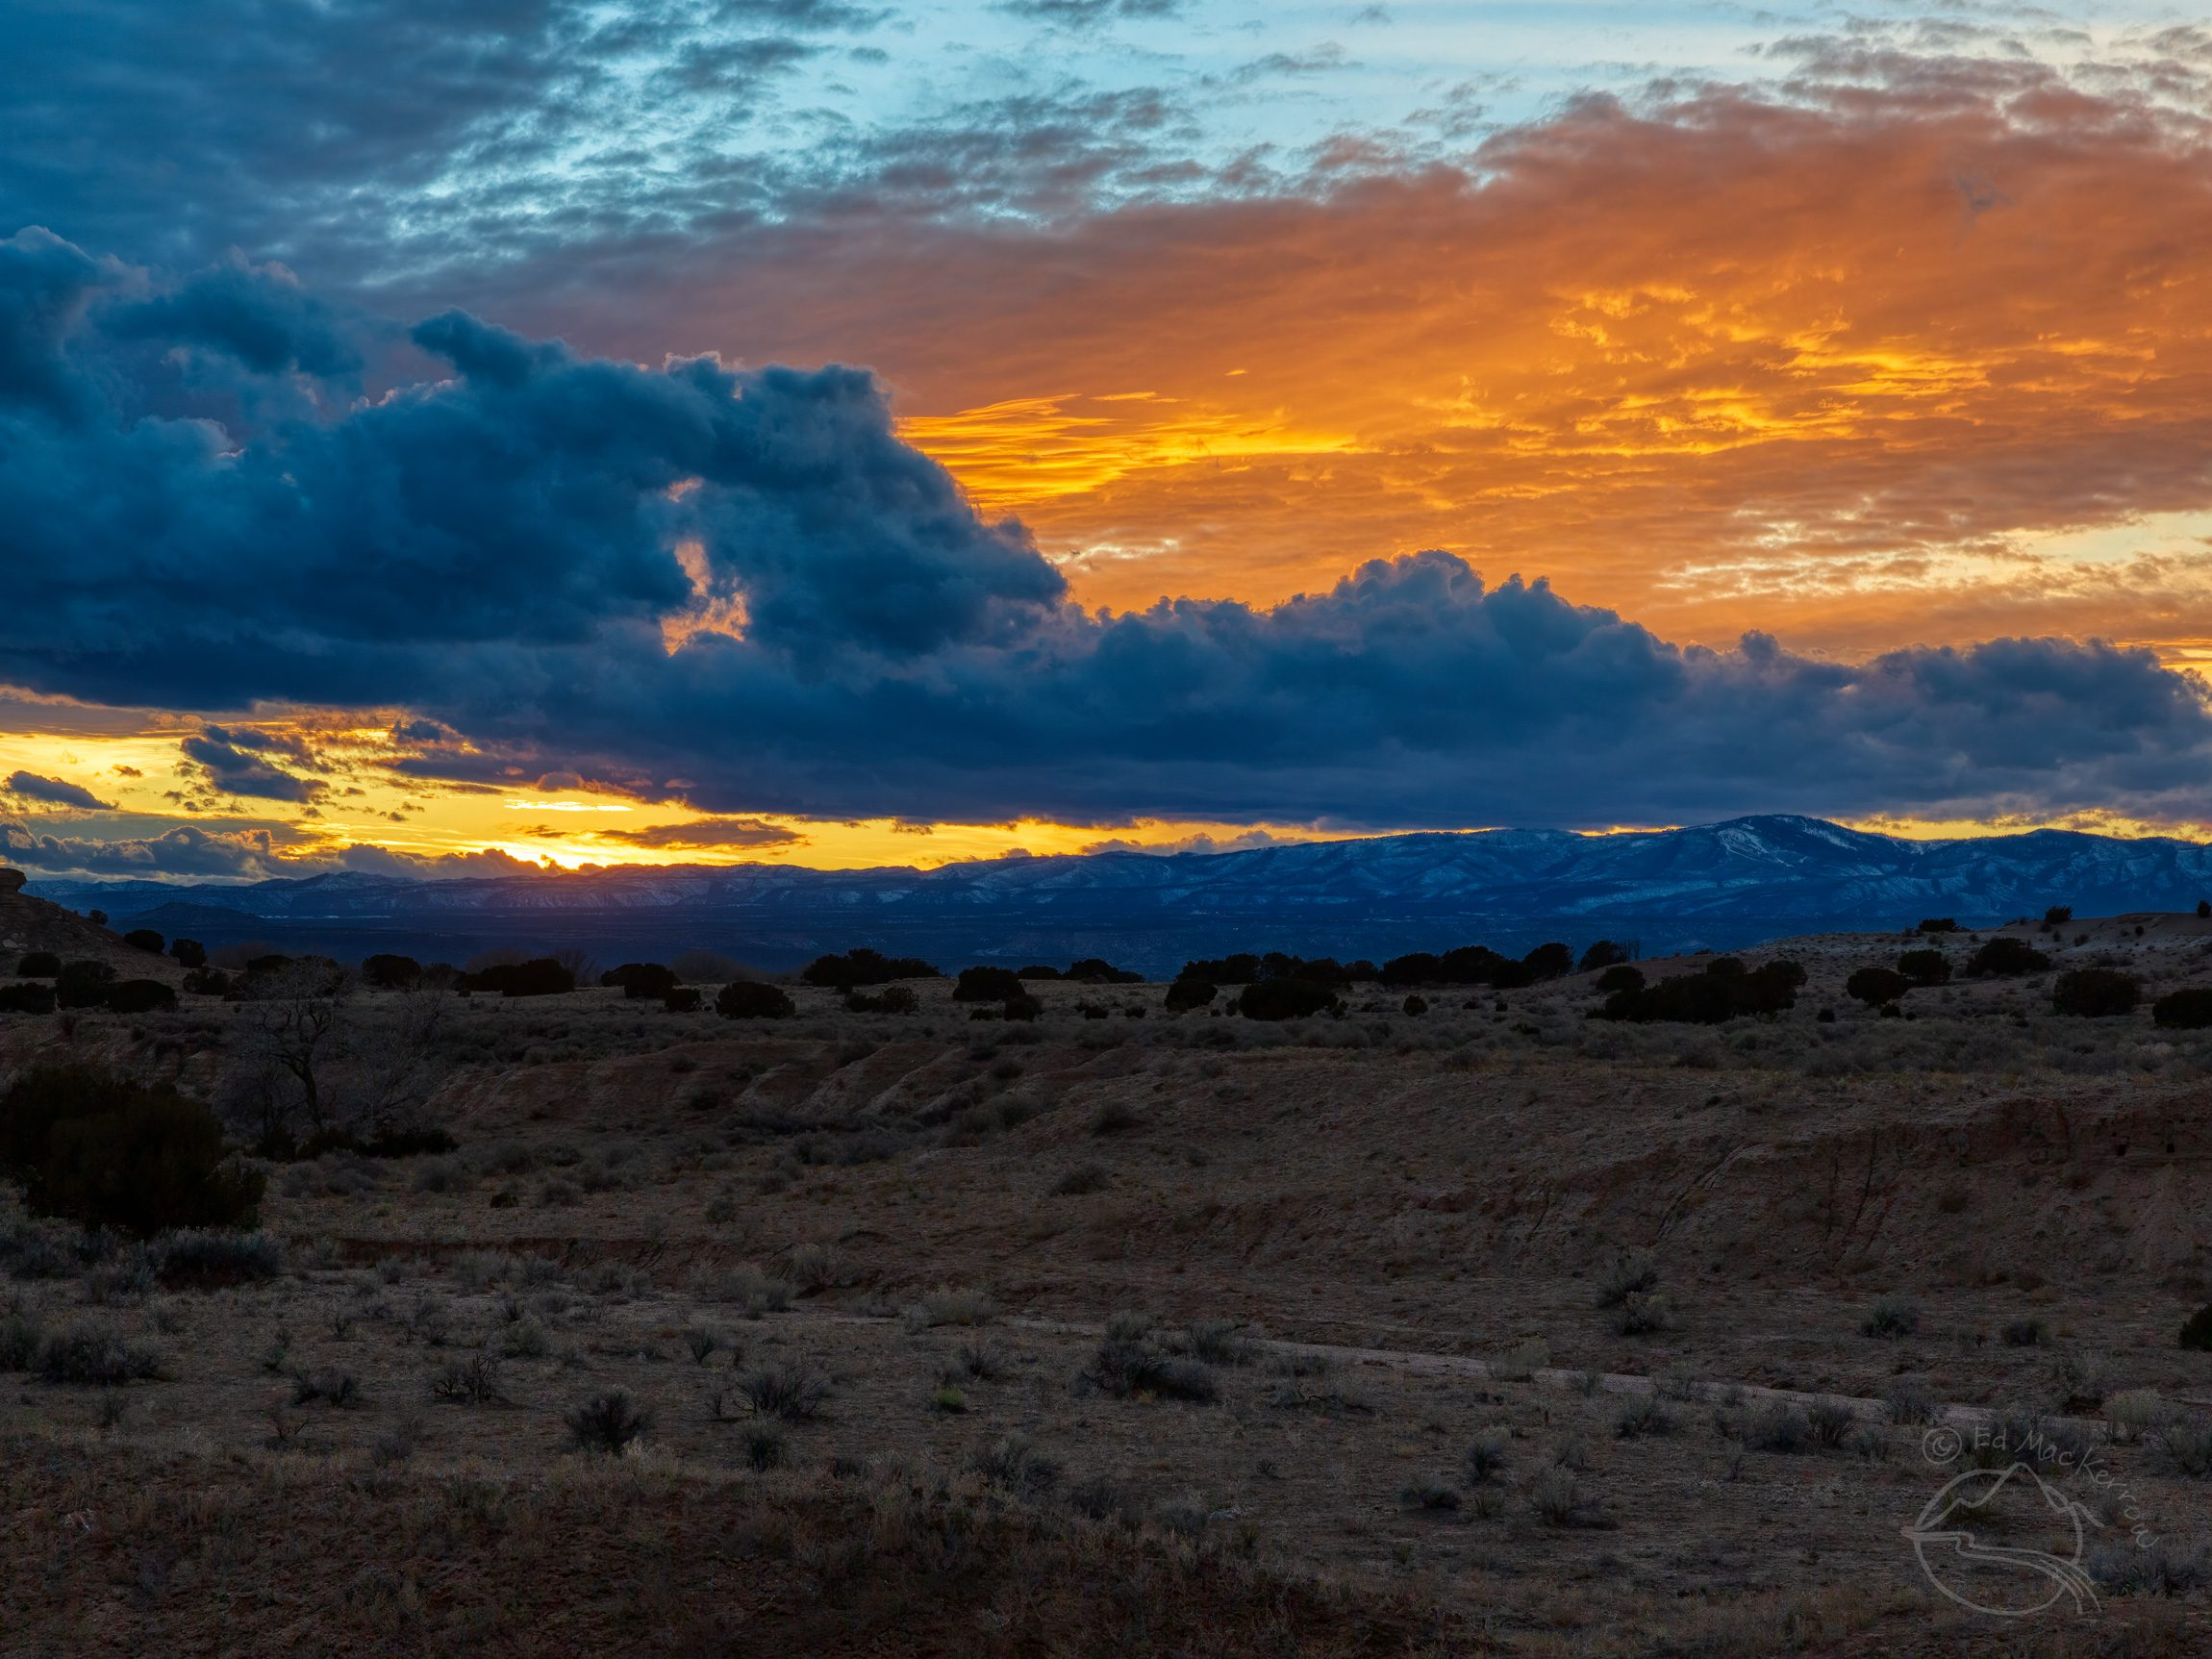 Stratocumulus clouds under cirrostratus clouds at sunset in New Mexico